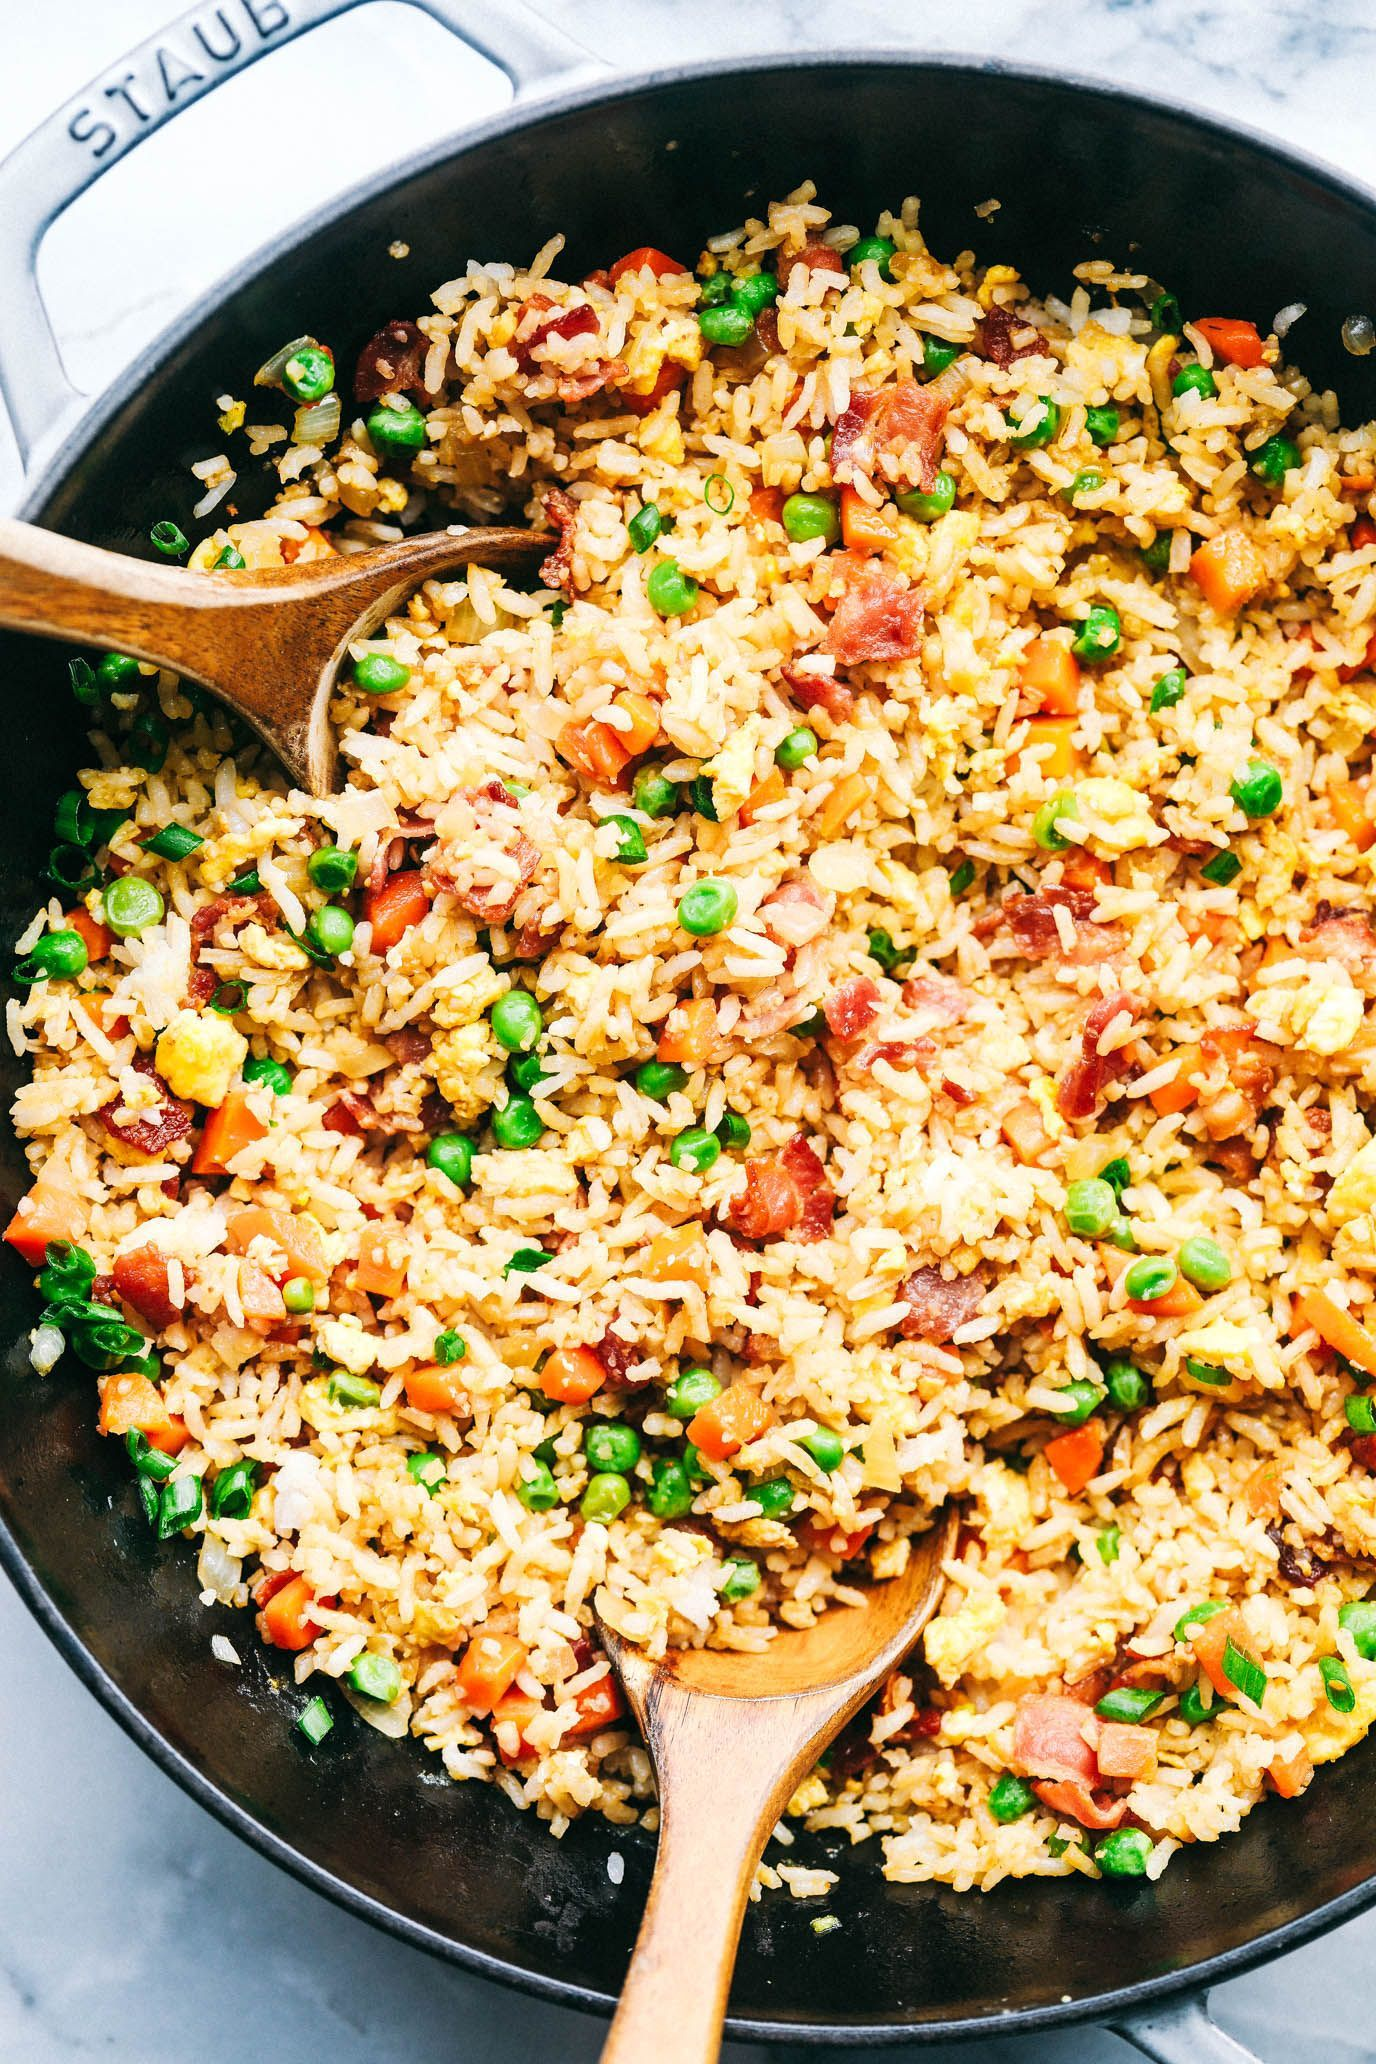 Simple bacon fried rice simple fried bacon -  Simple bacon fried rice  -